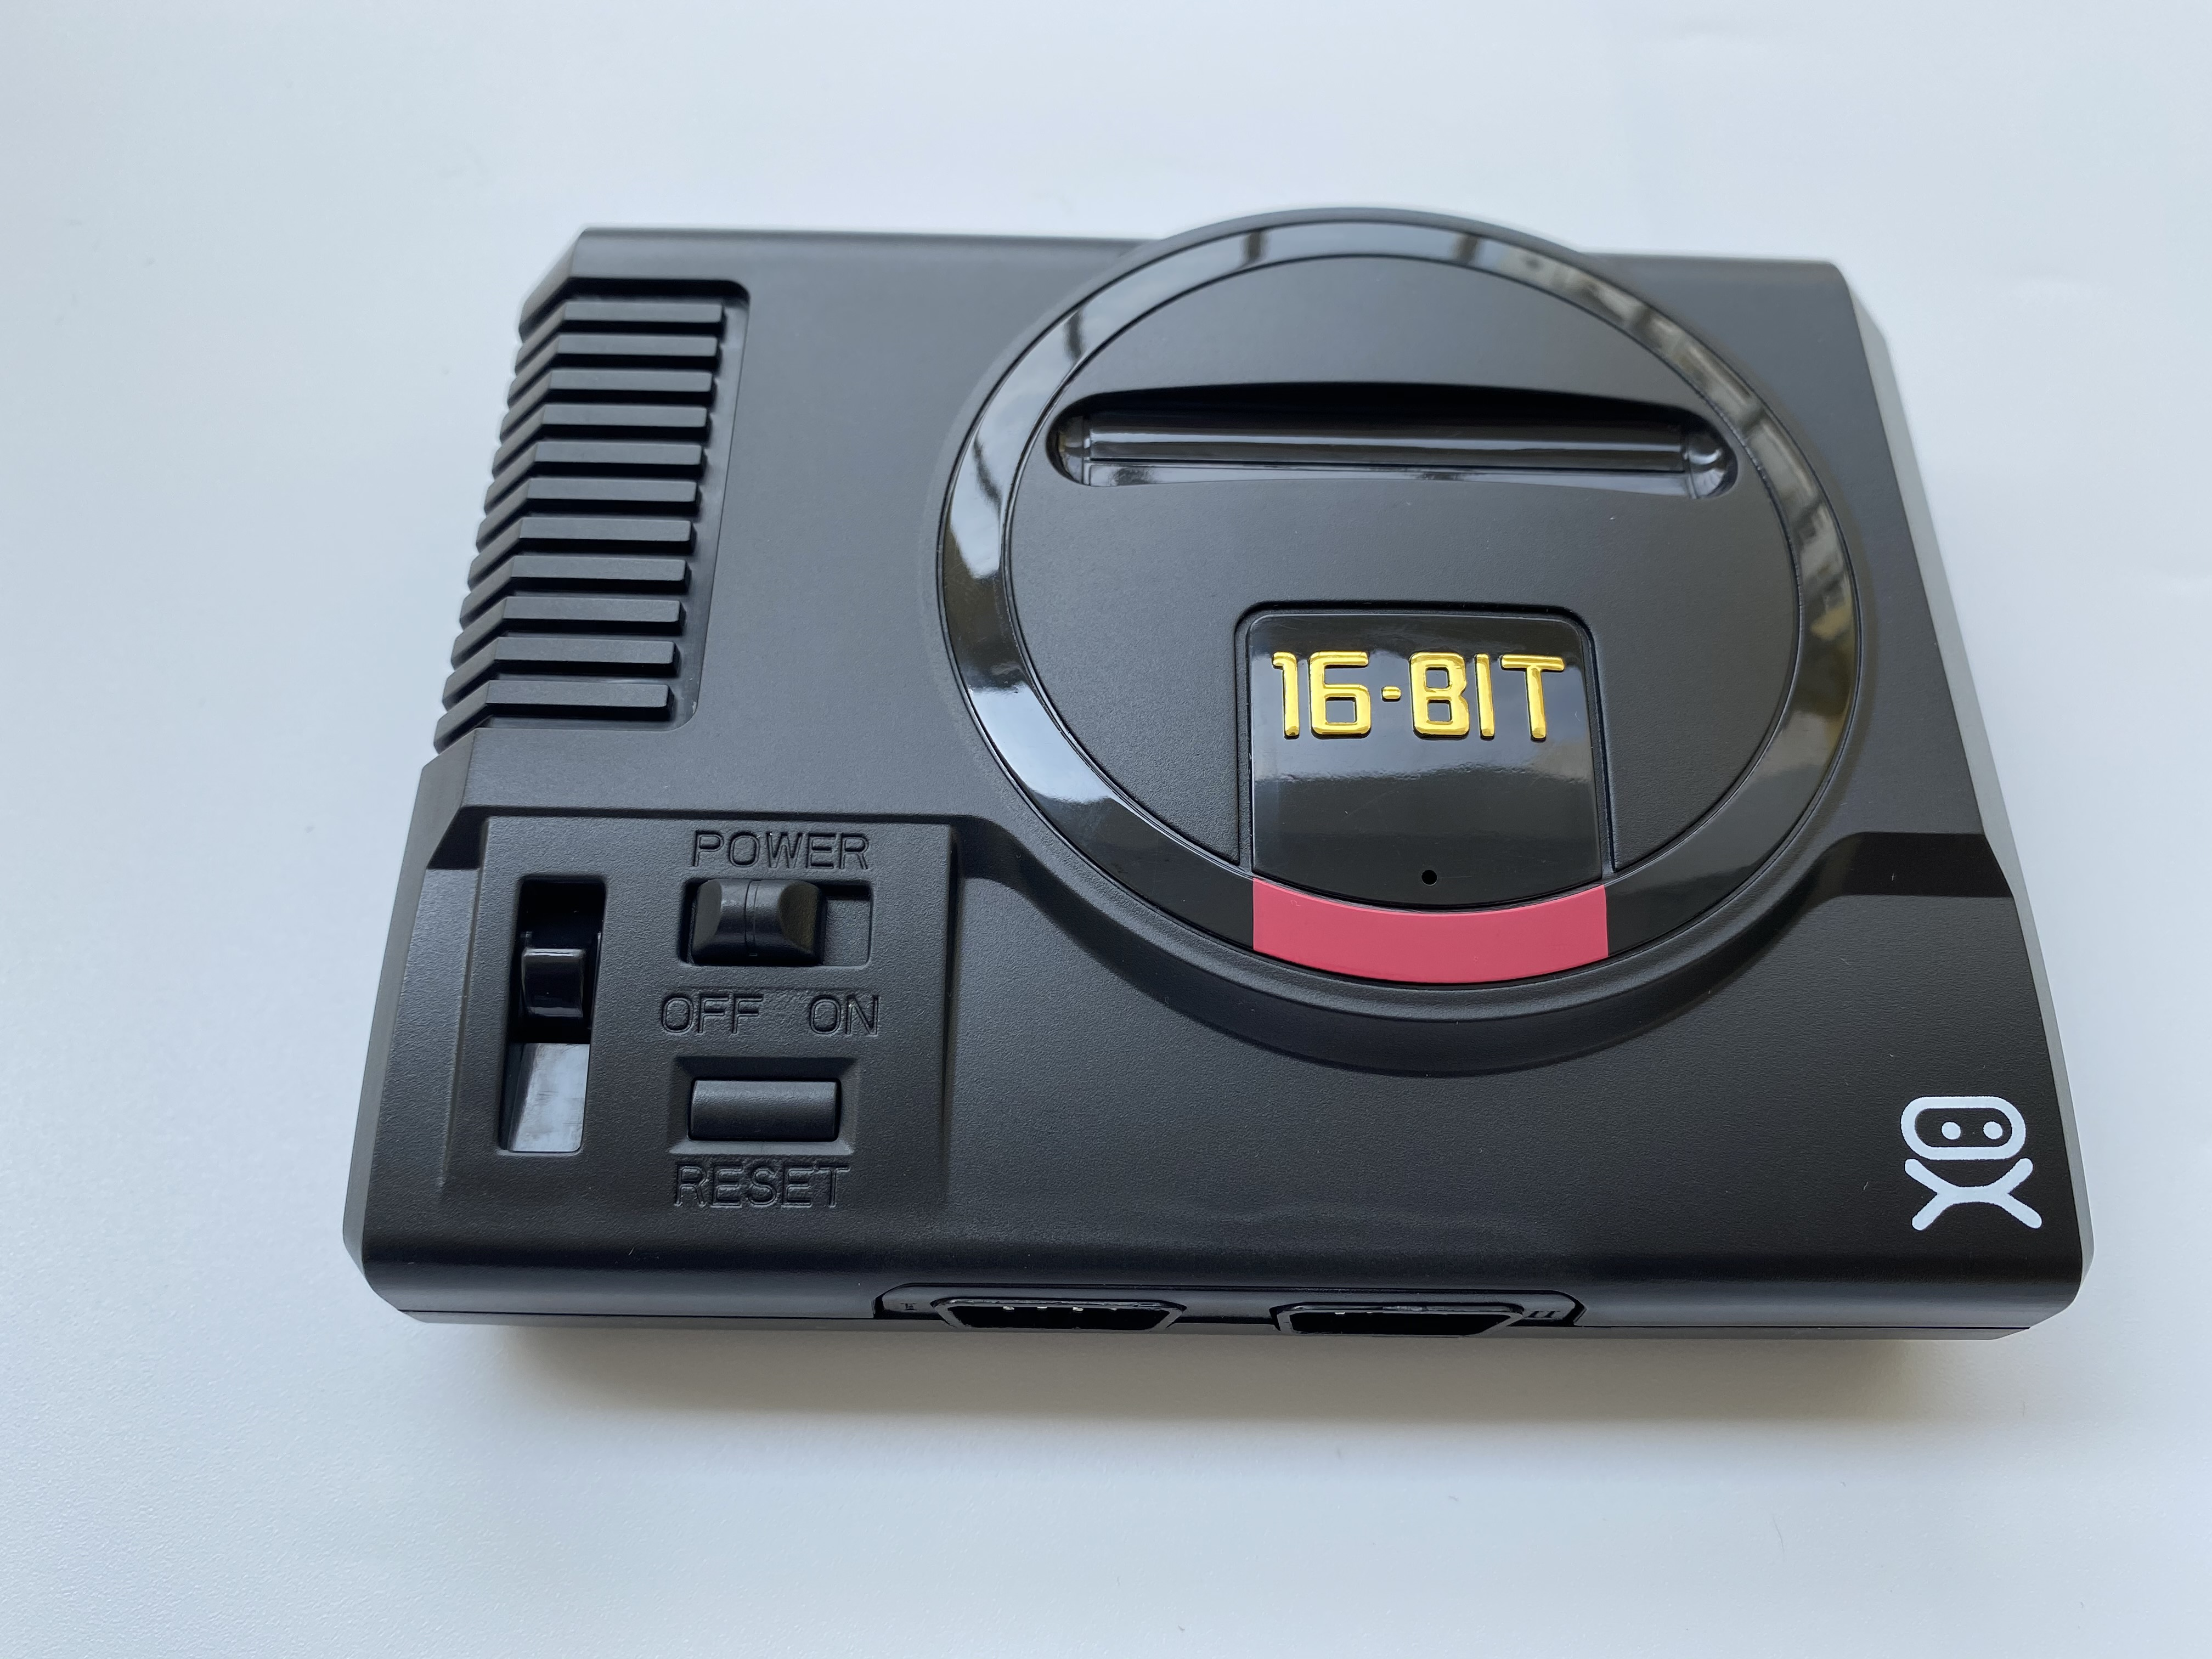 ORIGINAL MINI SEGA GENESIS 16 BIT VIDEO GAME CONSOLE SYSTEM COMPLETE PLUG AND PLAY